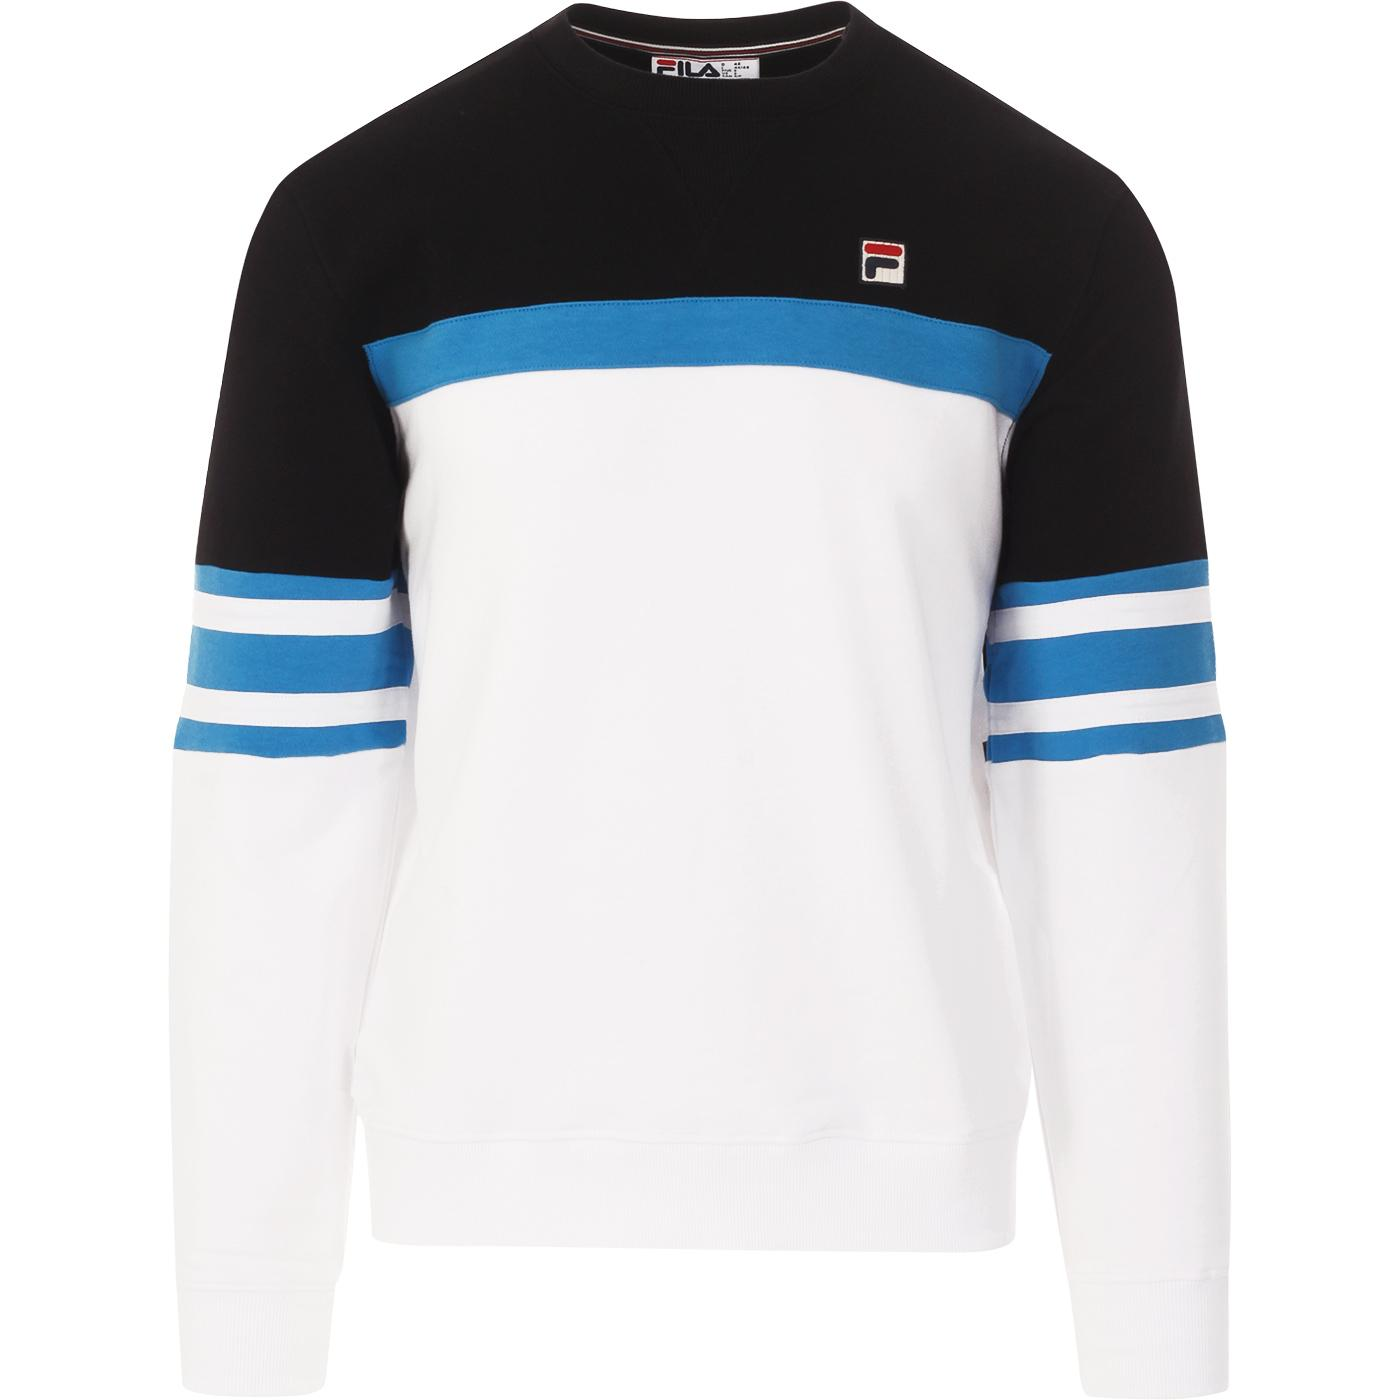 Verus FILA VINTAGE Colour Block Sweatshirt (W/B)